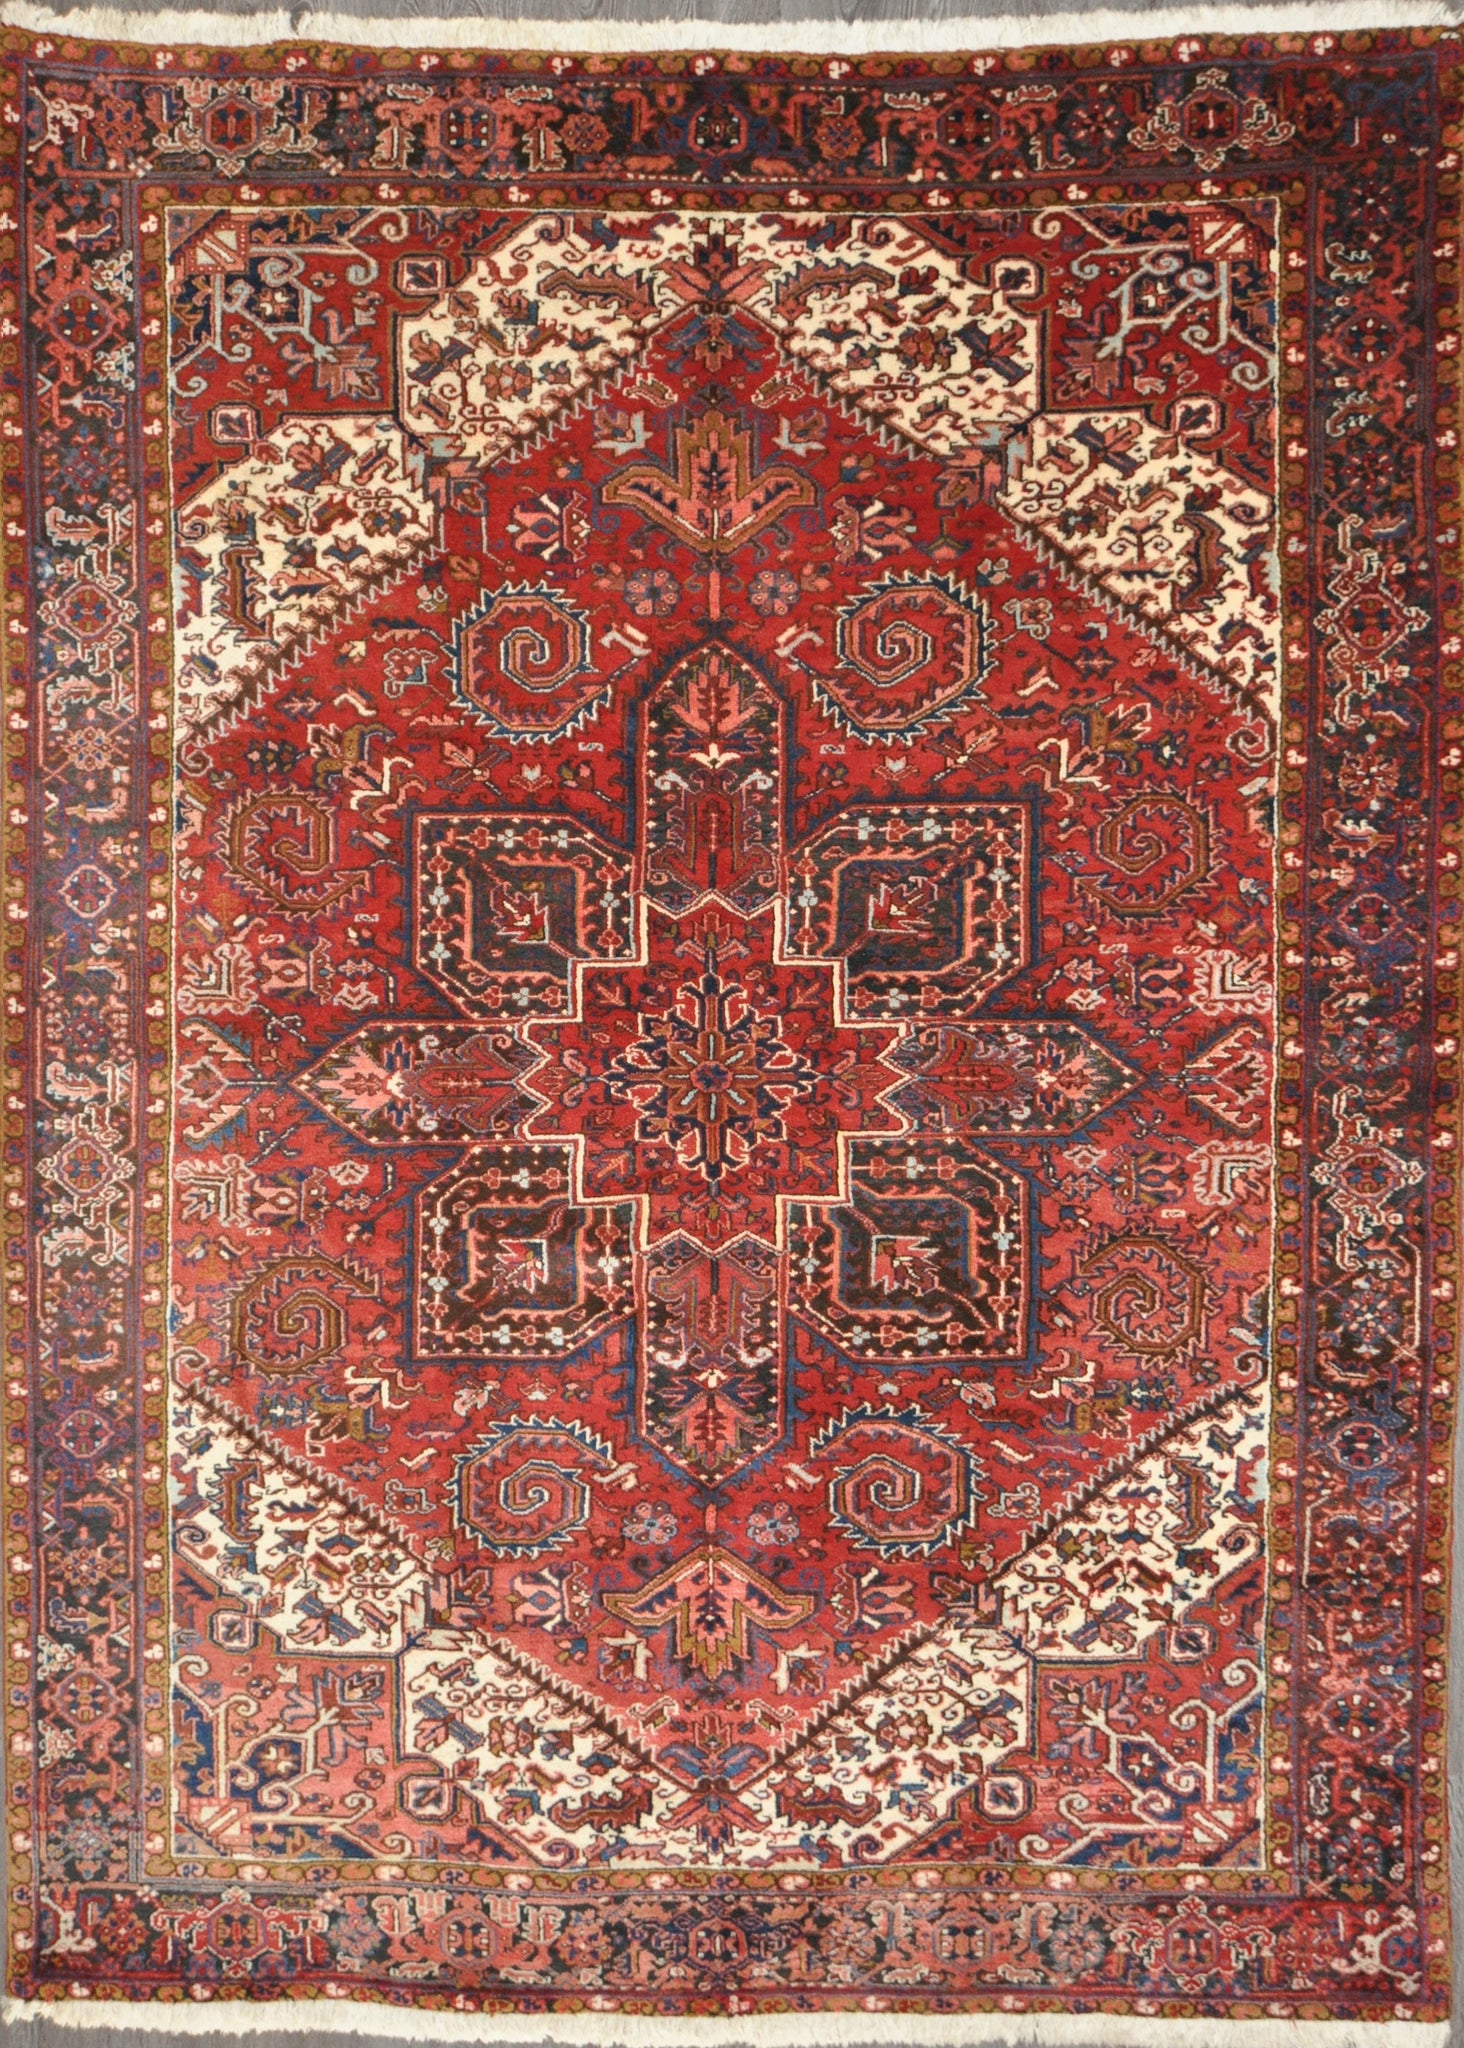 8.4x11.2 persian heriz geometric #28838